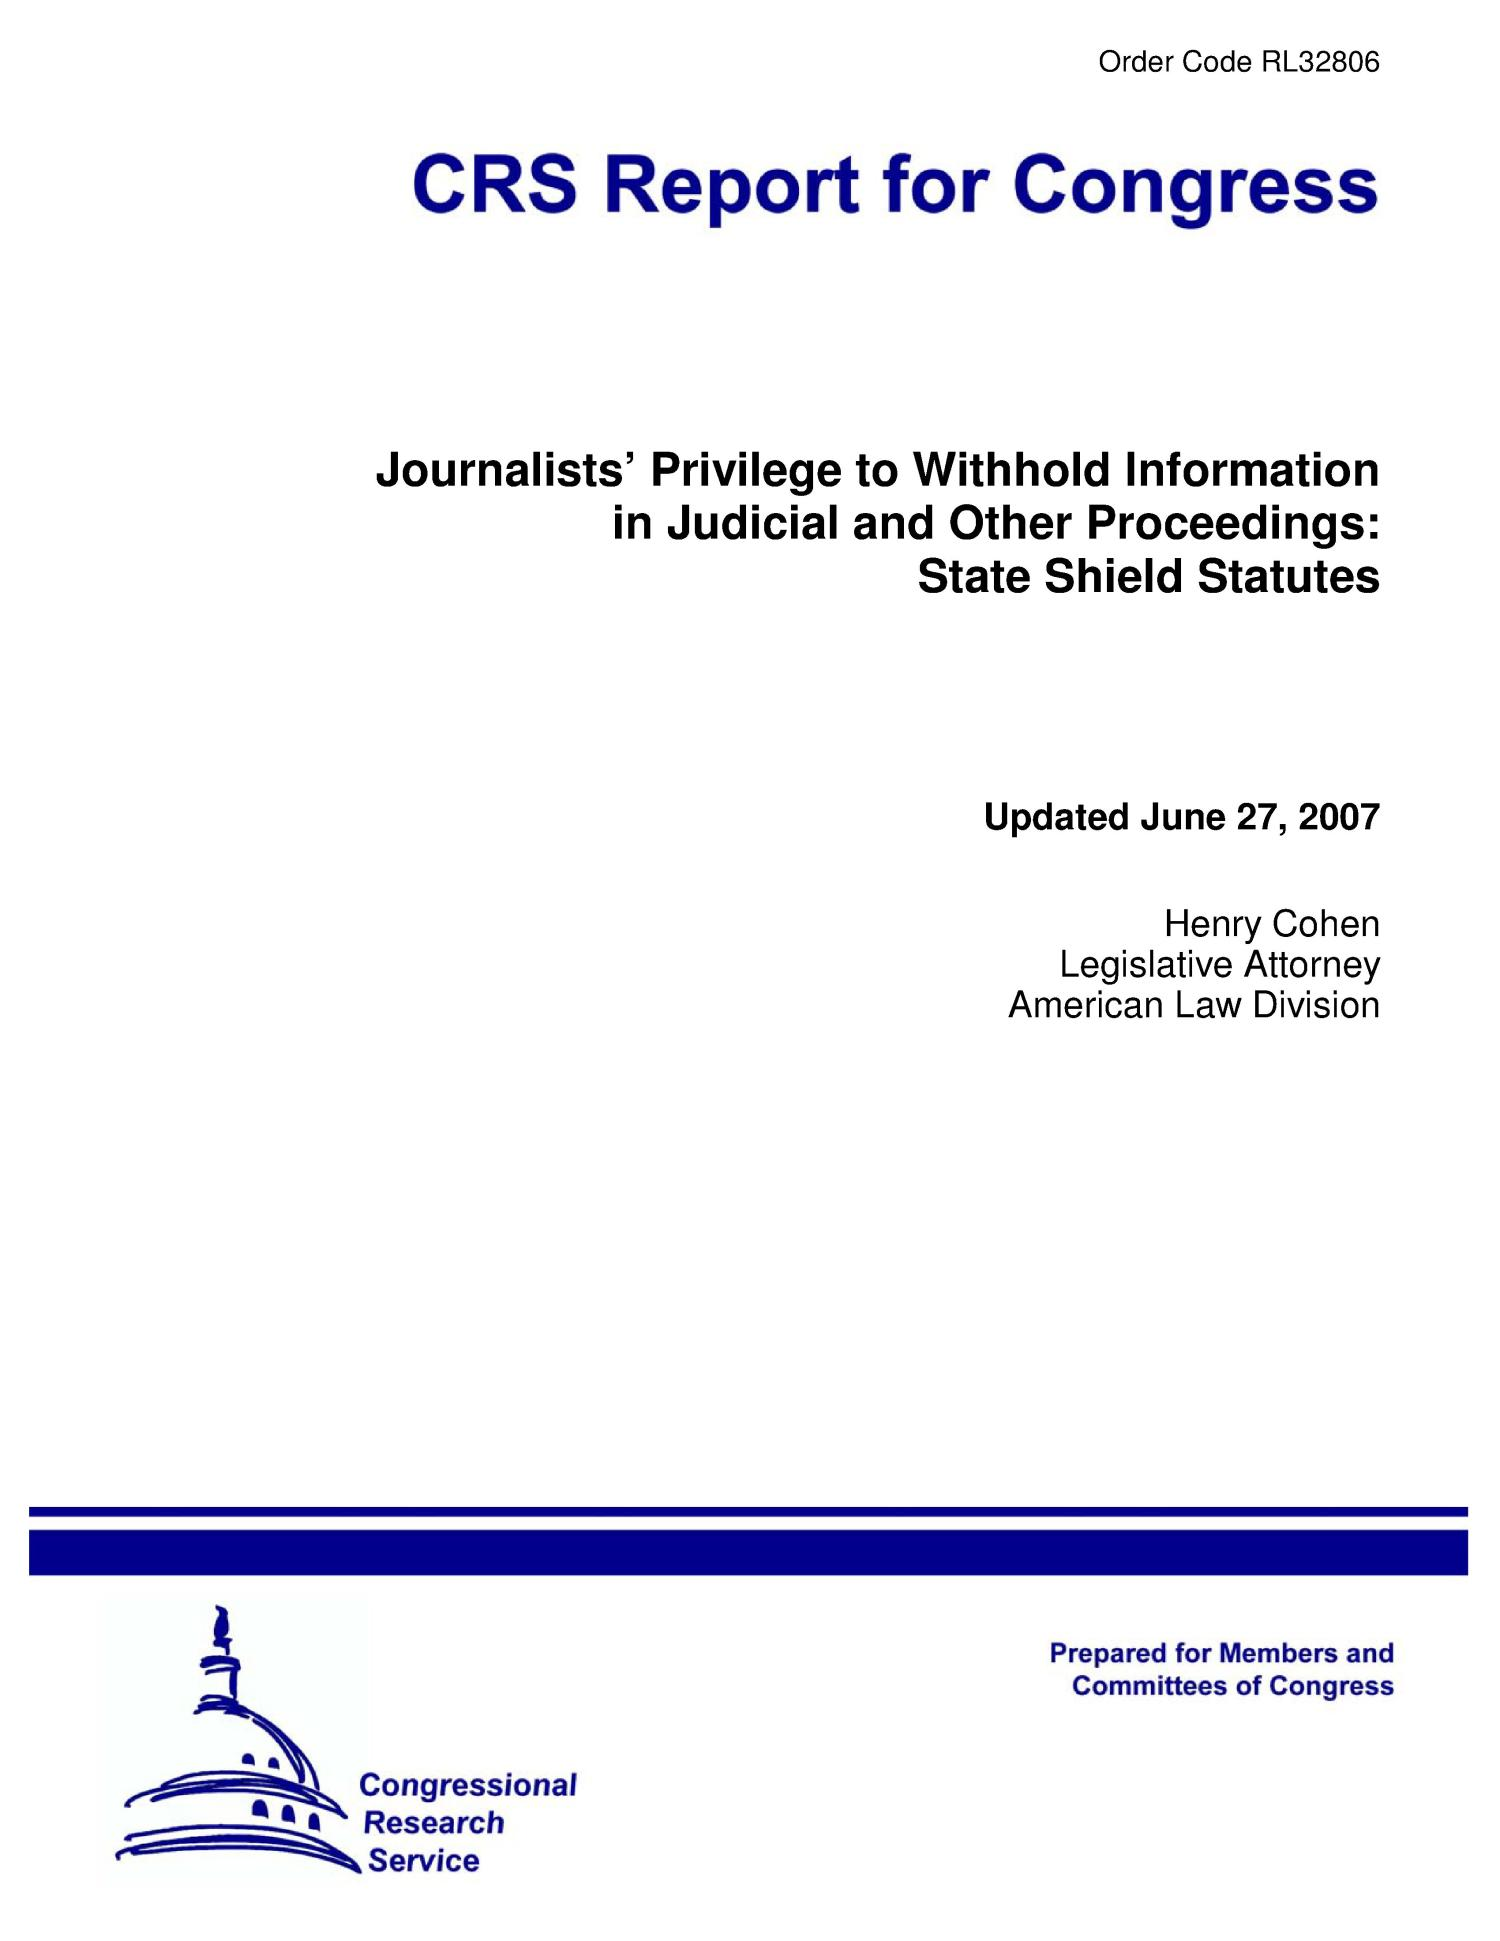 Journalists' Privilege to Withhold Information in Judicial and Other Proceedings: State Shield Statutes                                                                                                      [Sequence #]: 1 of 50